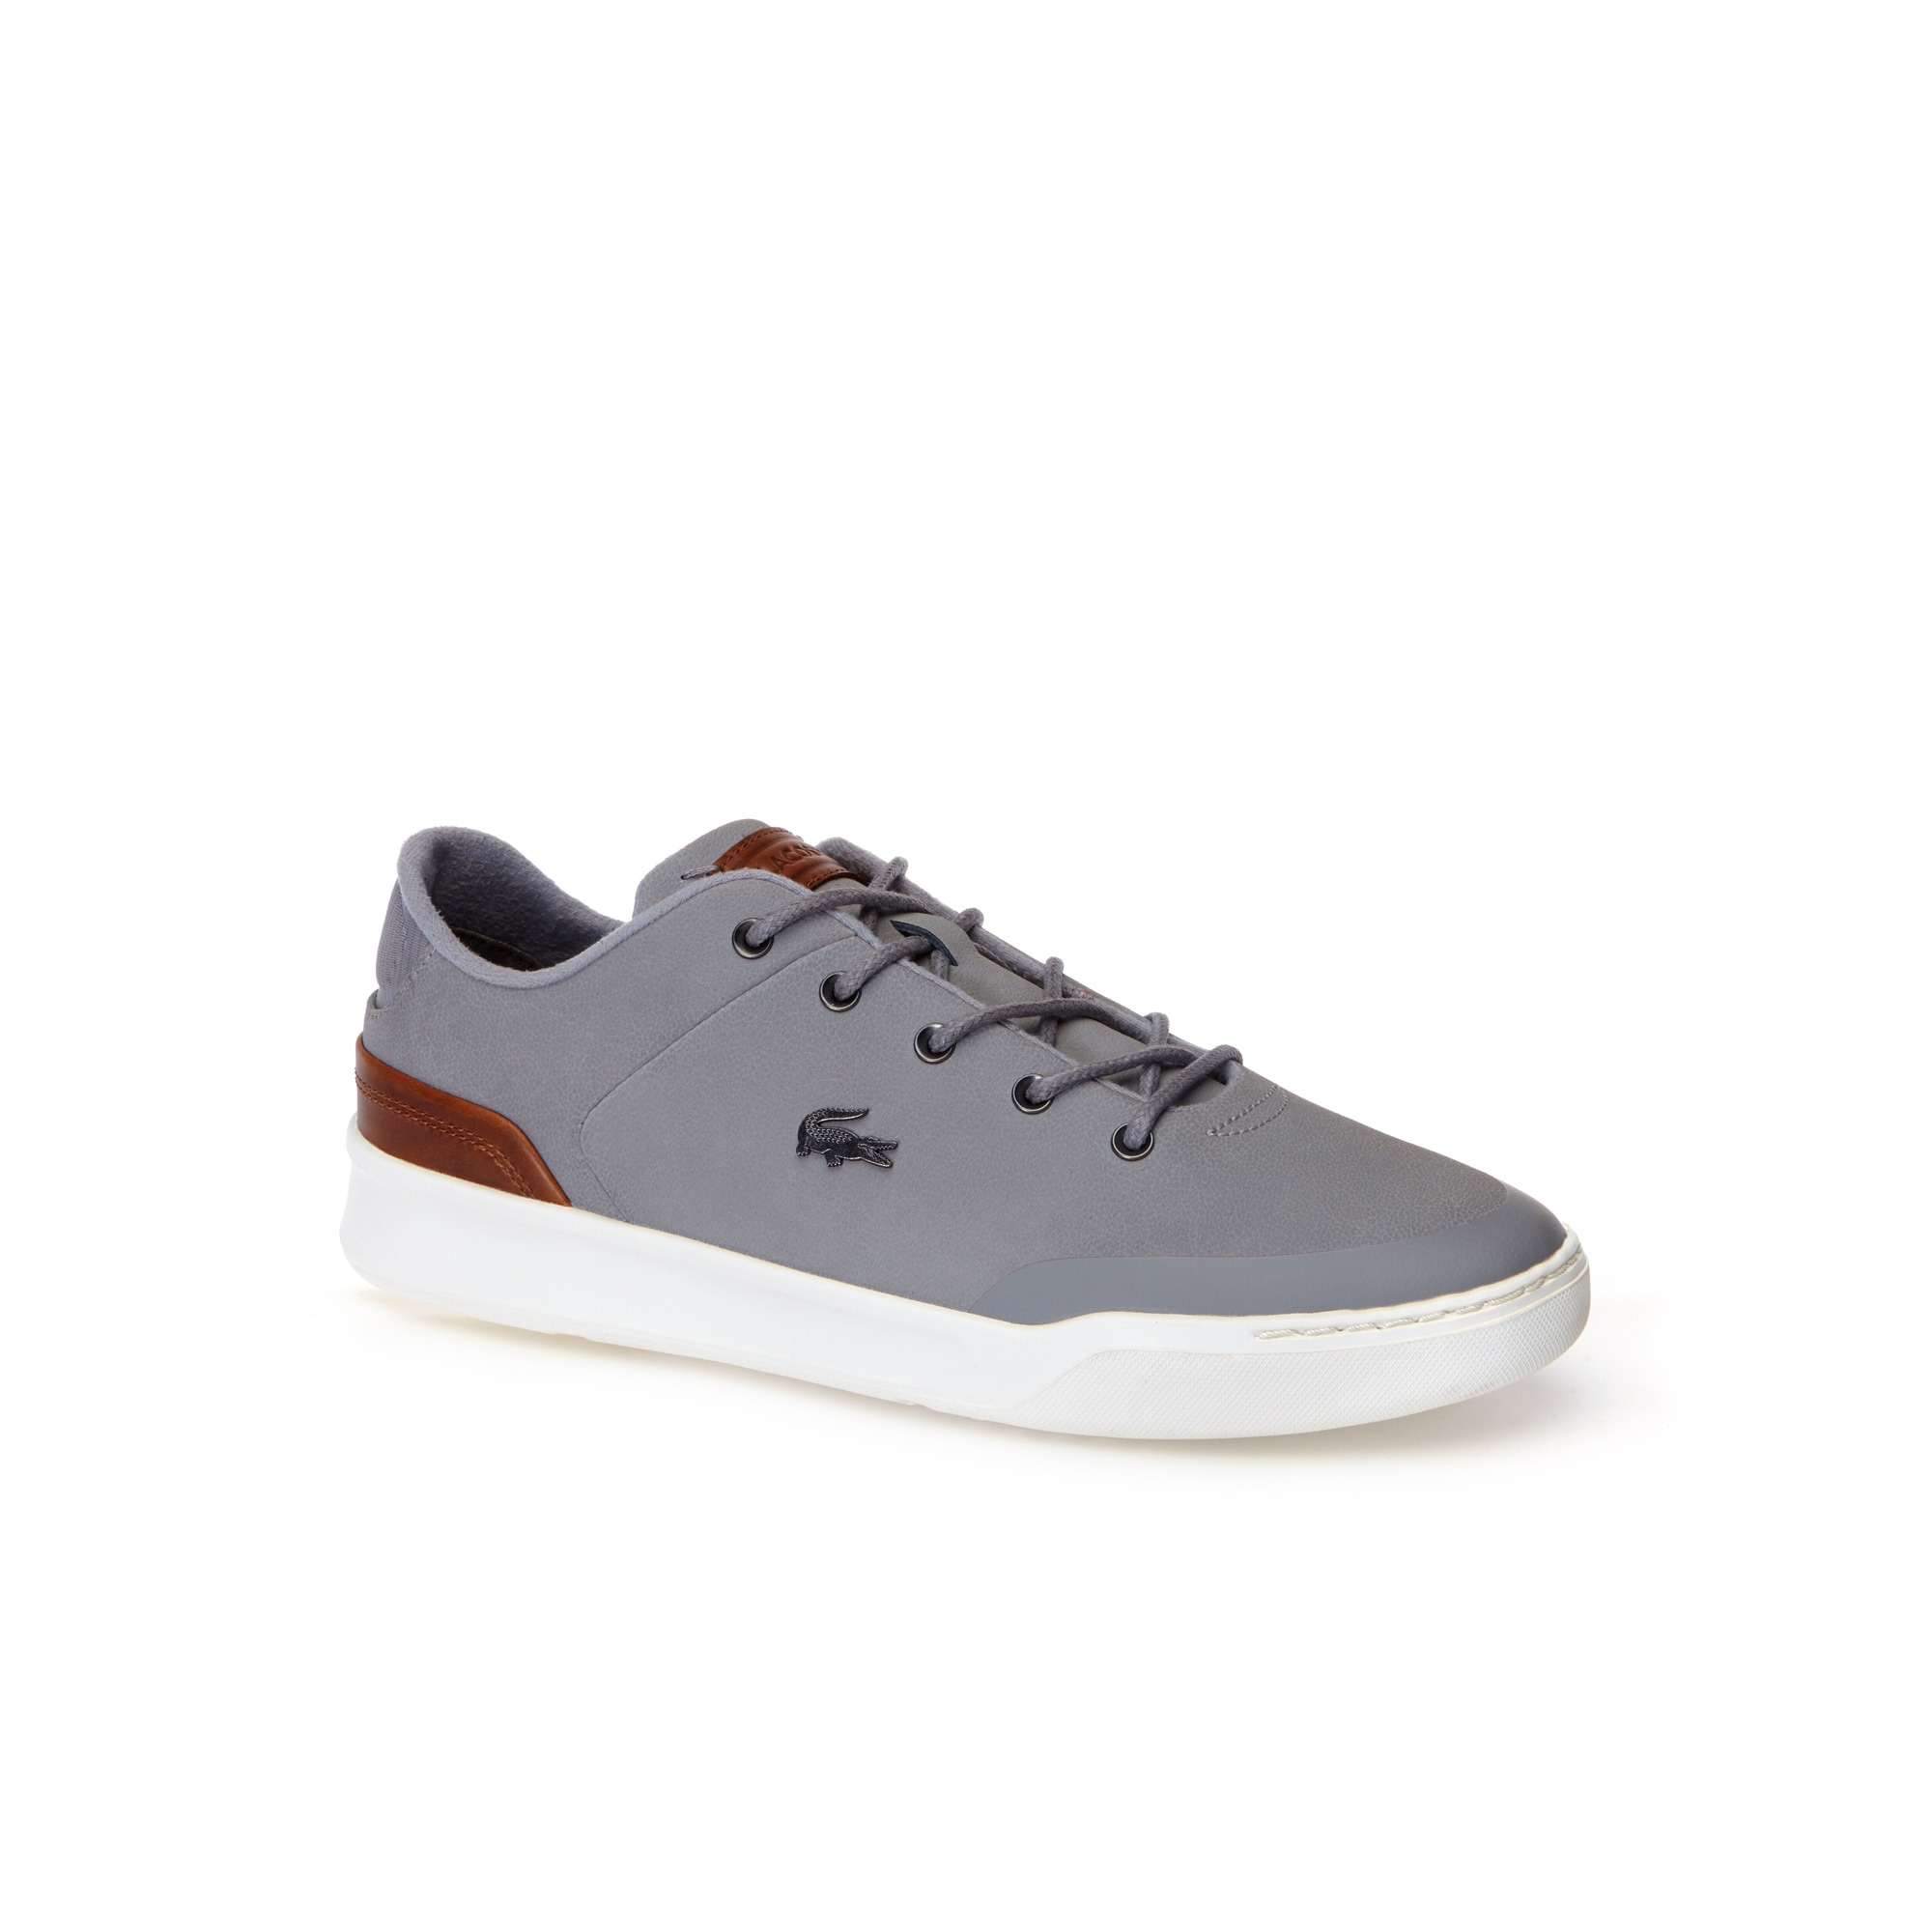 Men's Explorateur Classic L Nubuck Leather Trainers